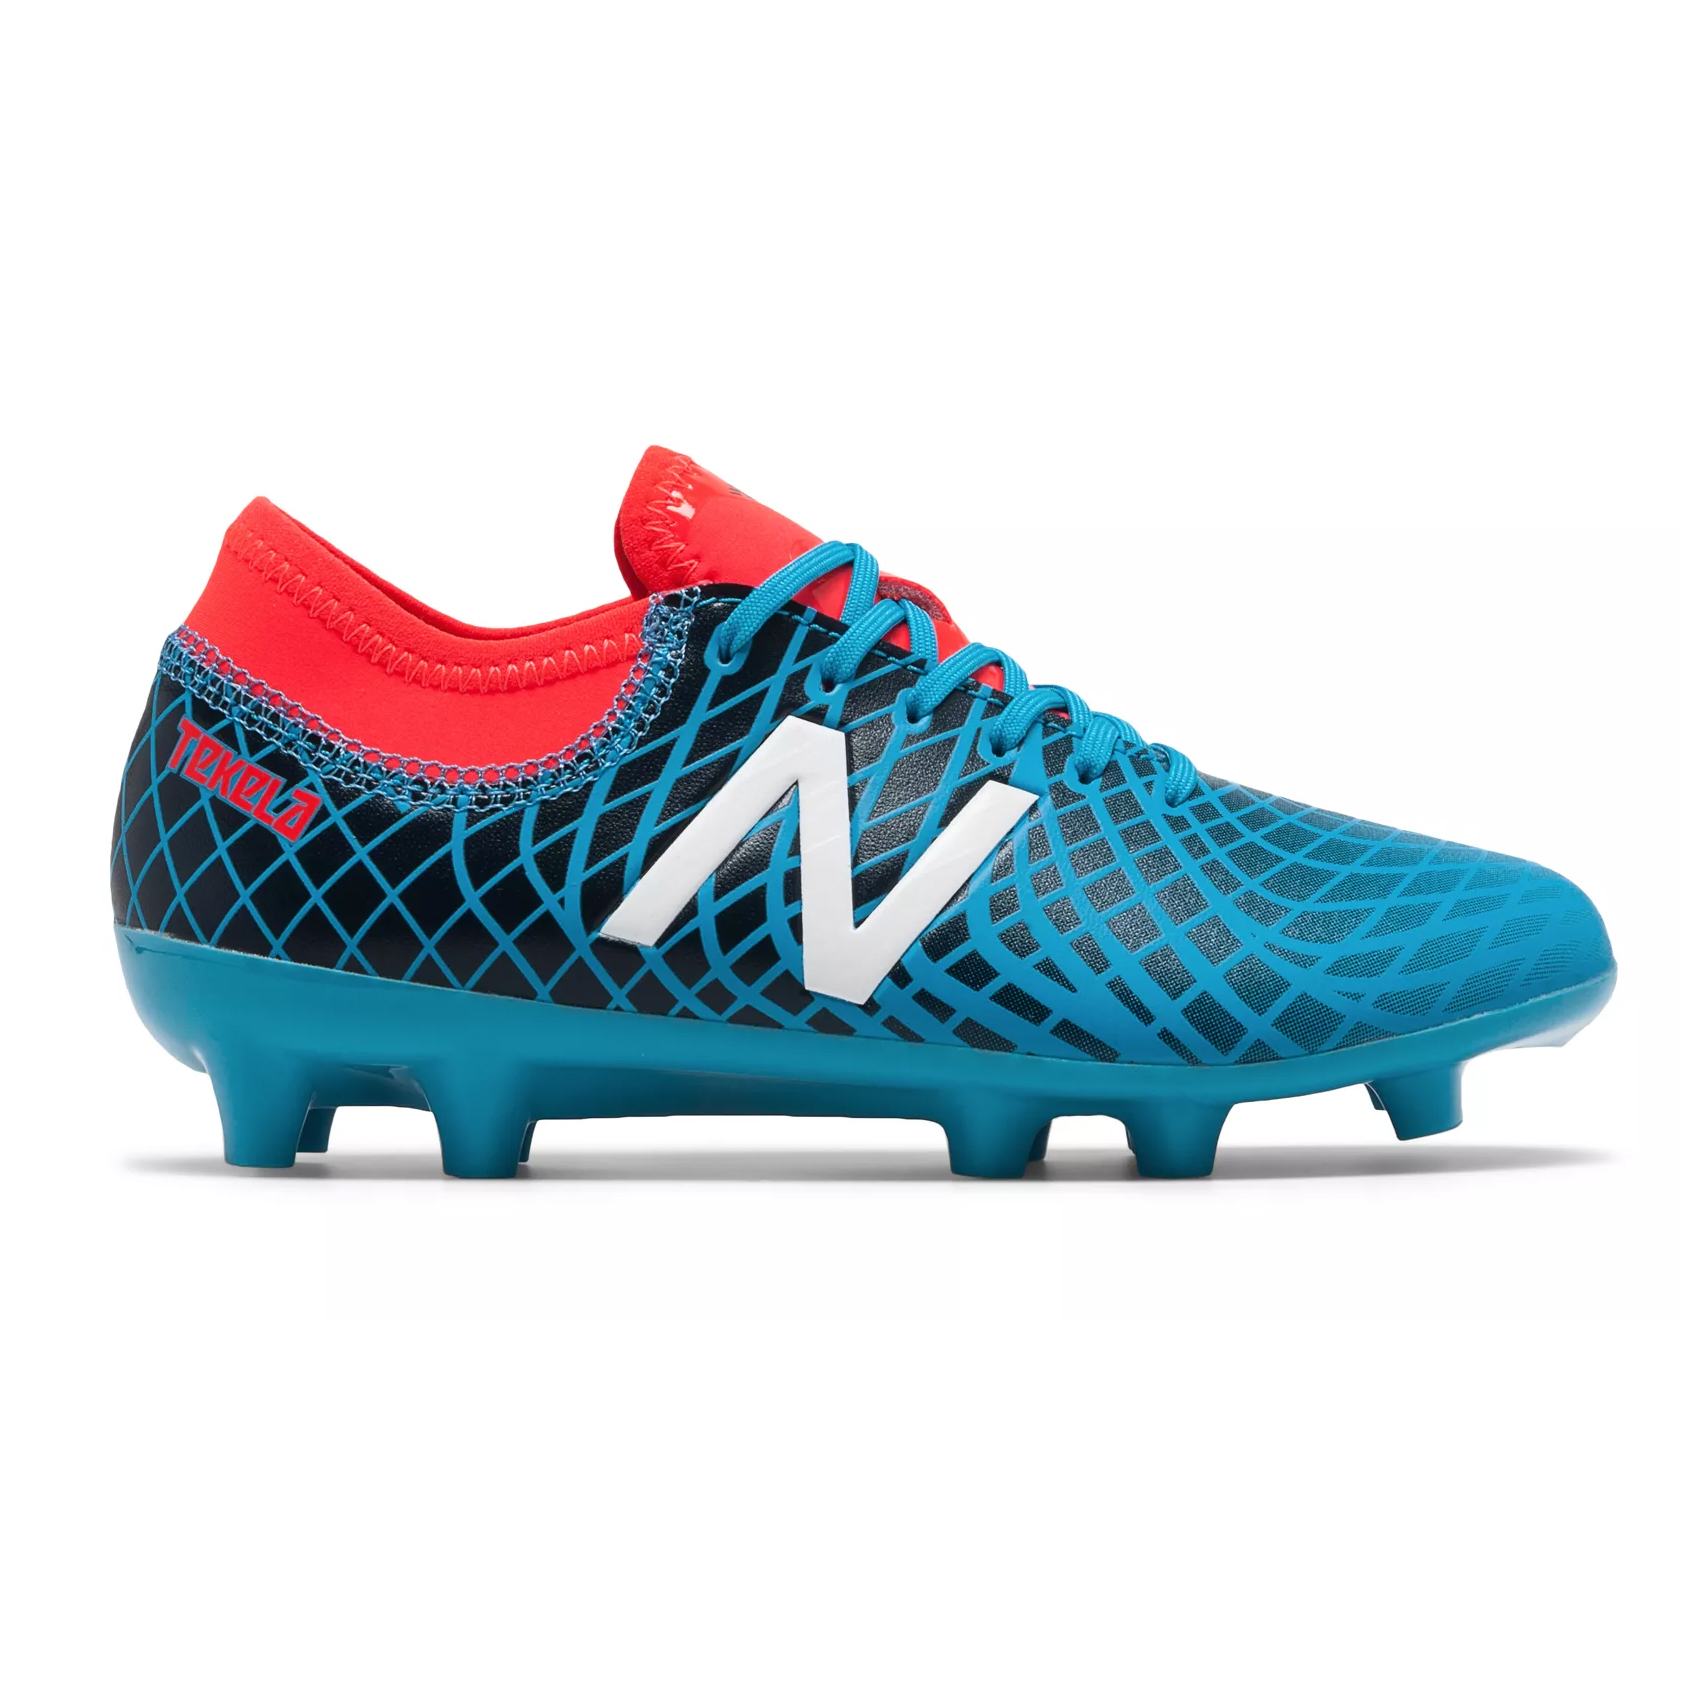 New Balance Junior Tekela Magique FG Football Boot- Polaris  7fb8e9f322d88